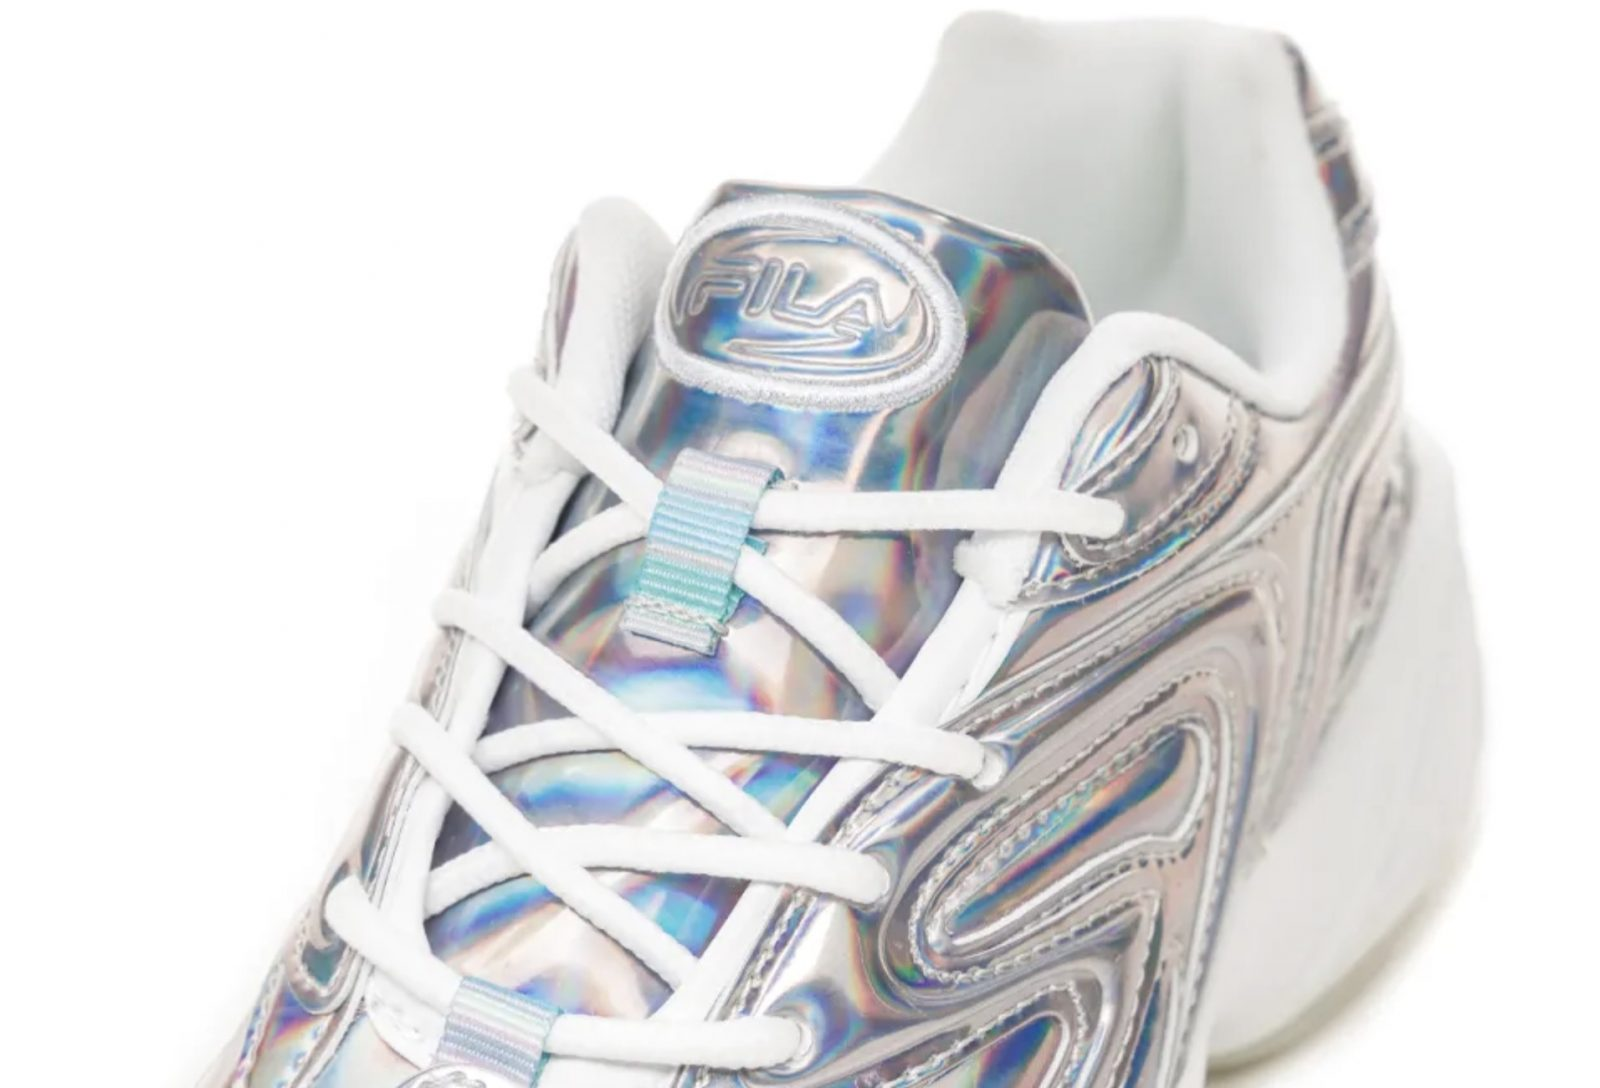 This FILA Creator Has Turned Into An Iridescent Dream 5